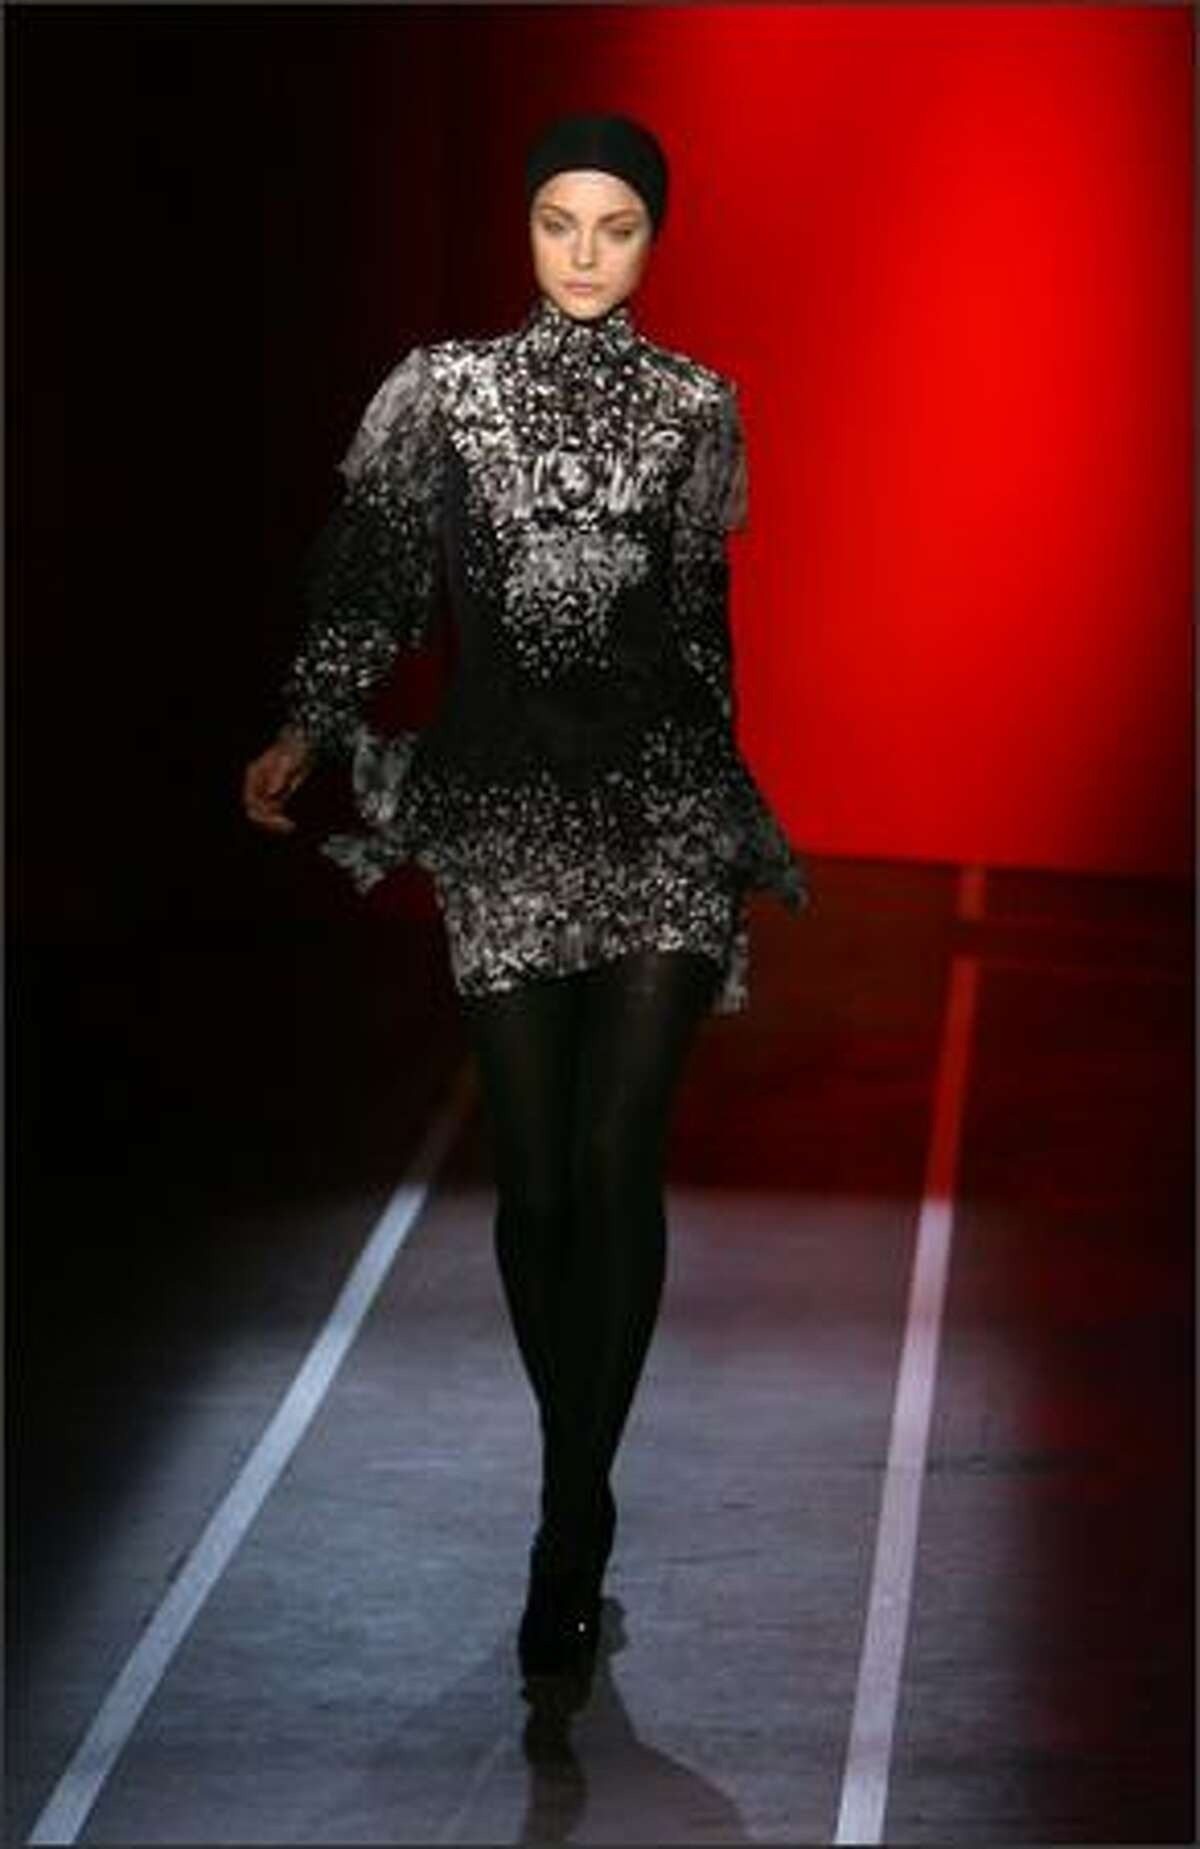 A model walks the runway at the Jonathan Saunders Fall 2009 fashion show during Mercedes-Benz Fashion Week at Skyline in New York City.